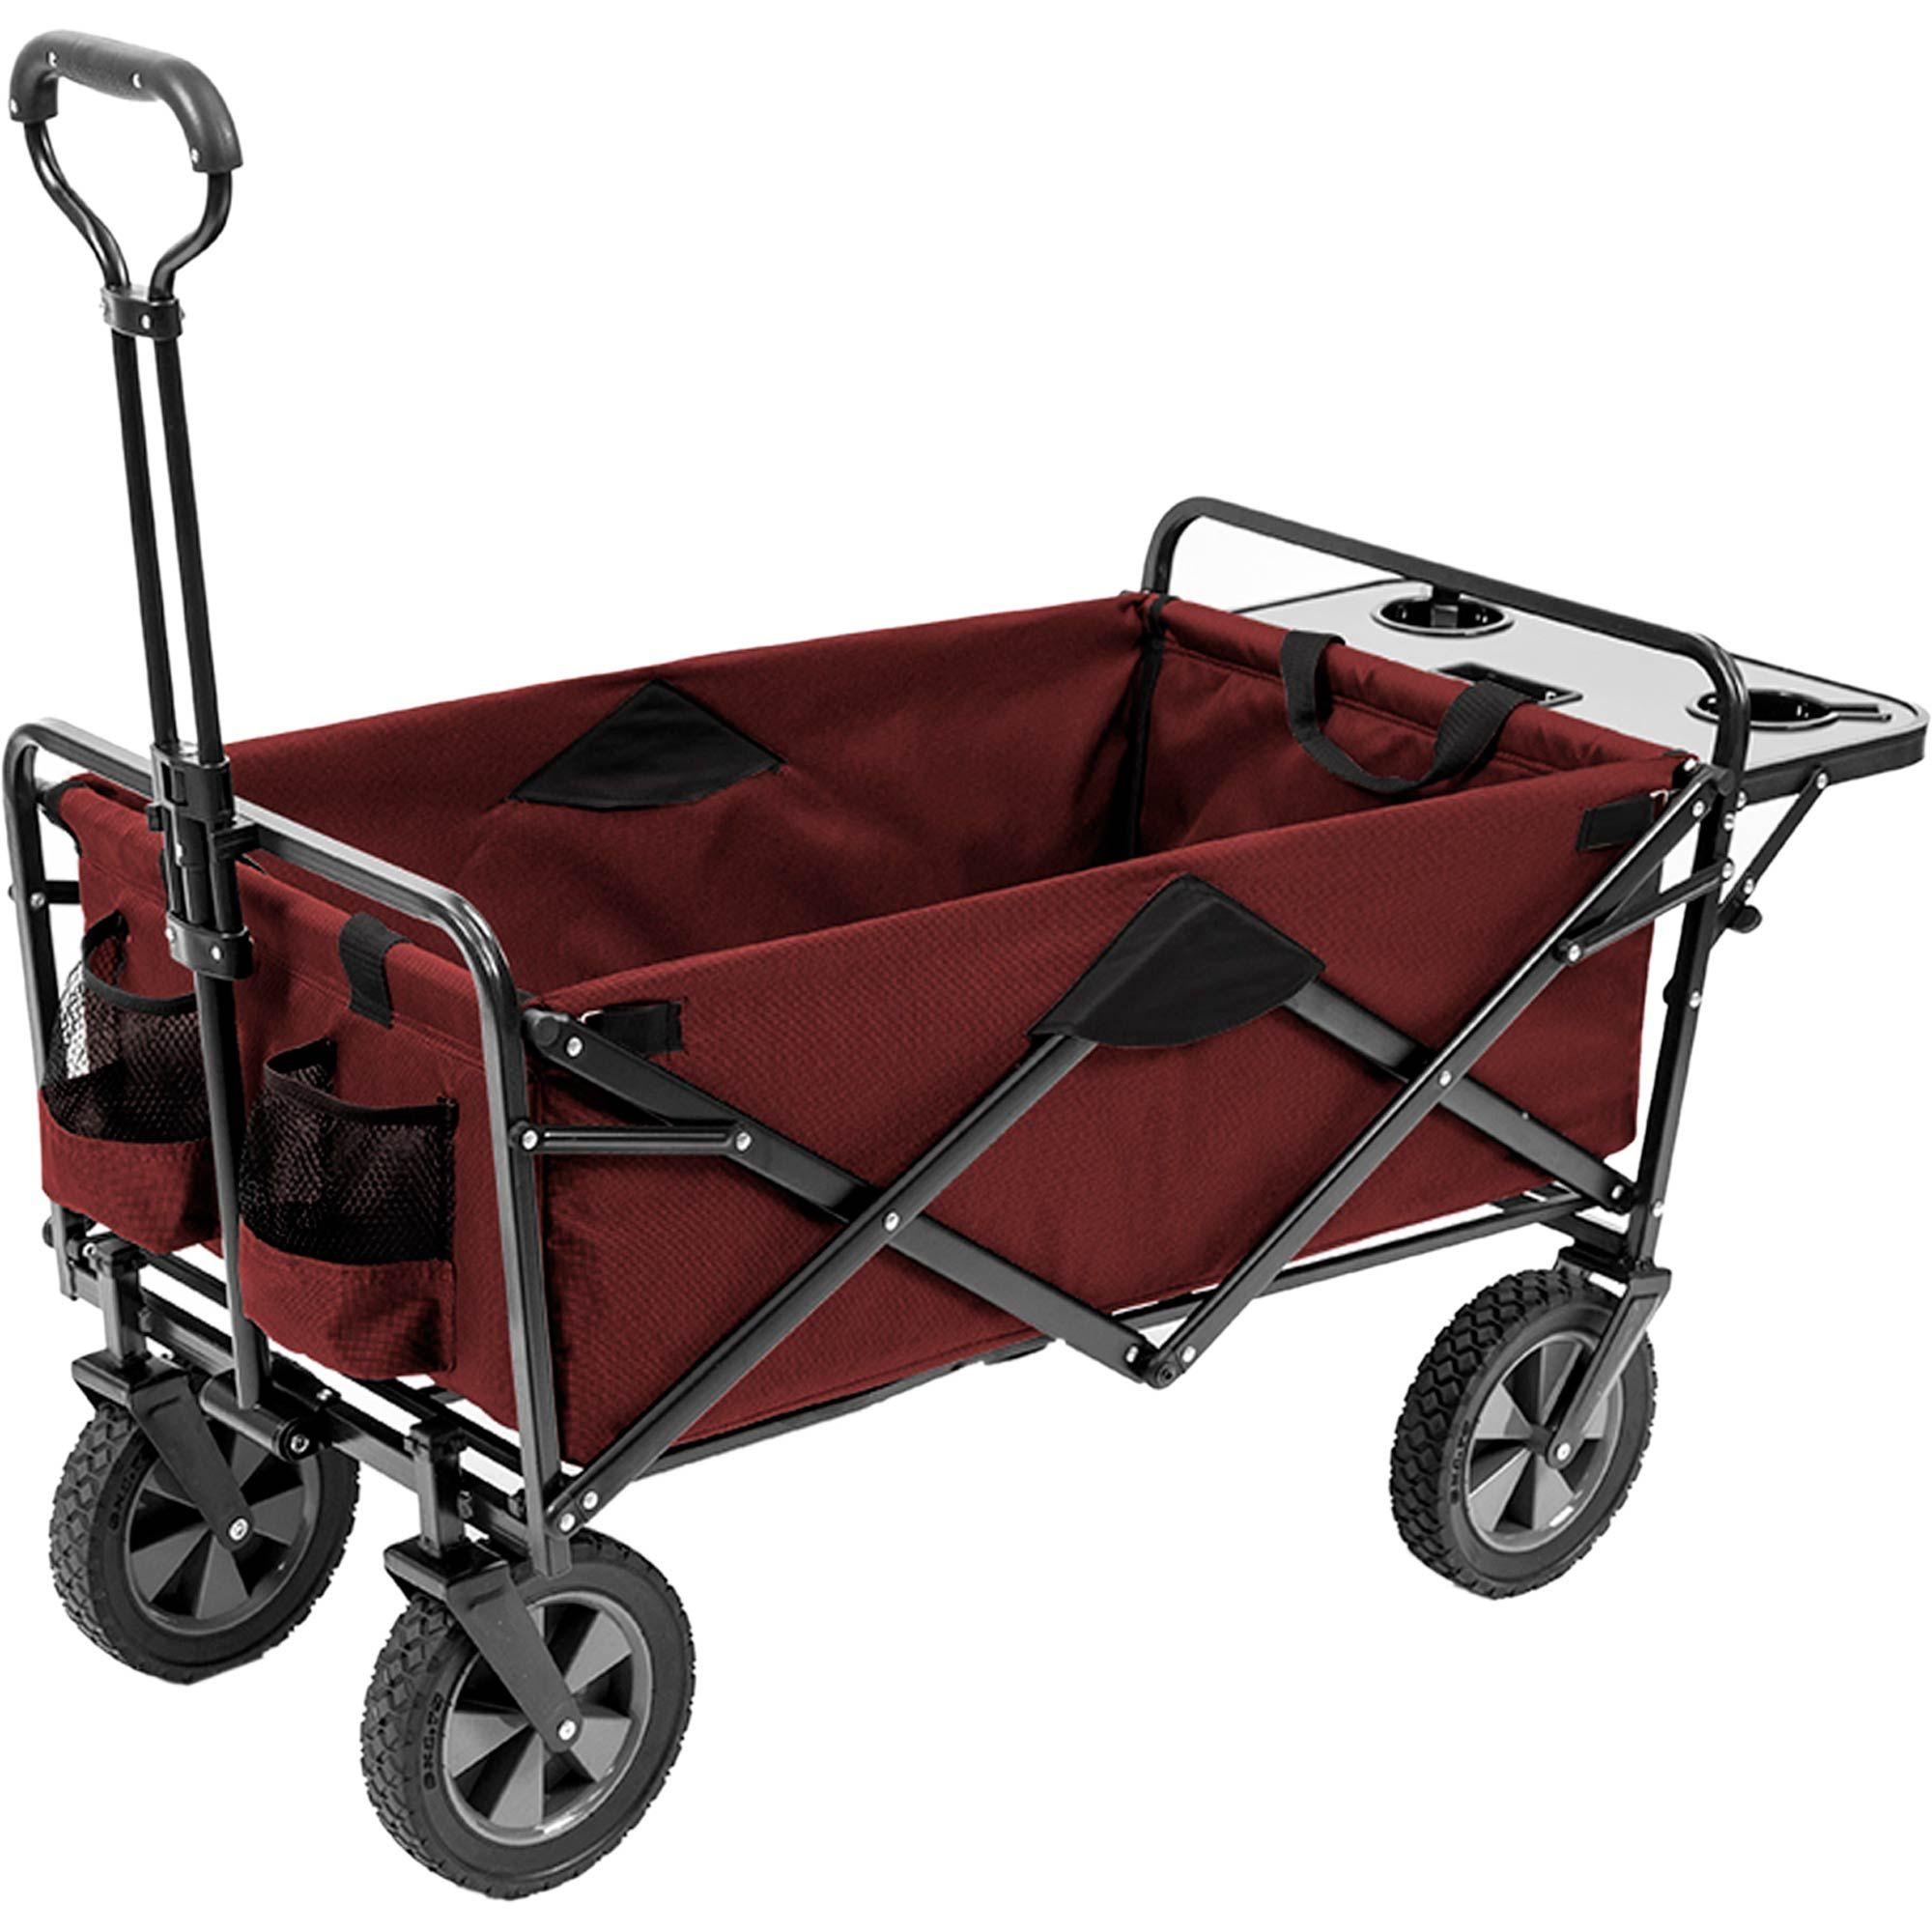 Mac Sports Collapsible Outdoor Utility Wagon Utility Wagon Folding Wagon Wagon Cart